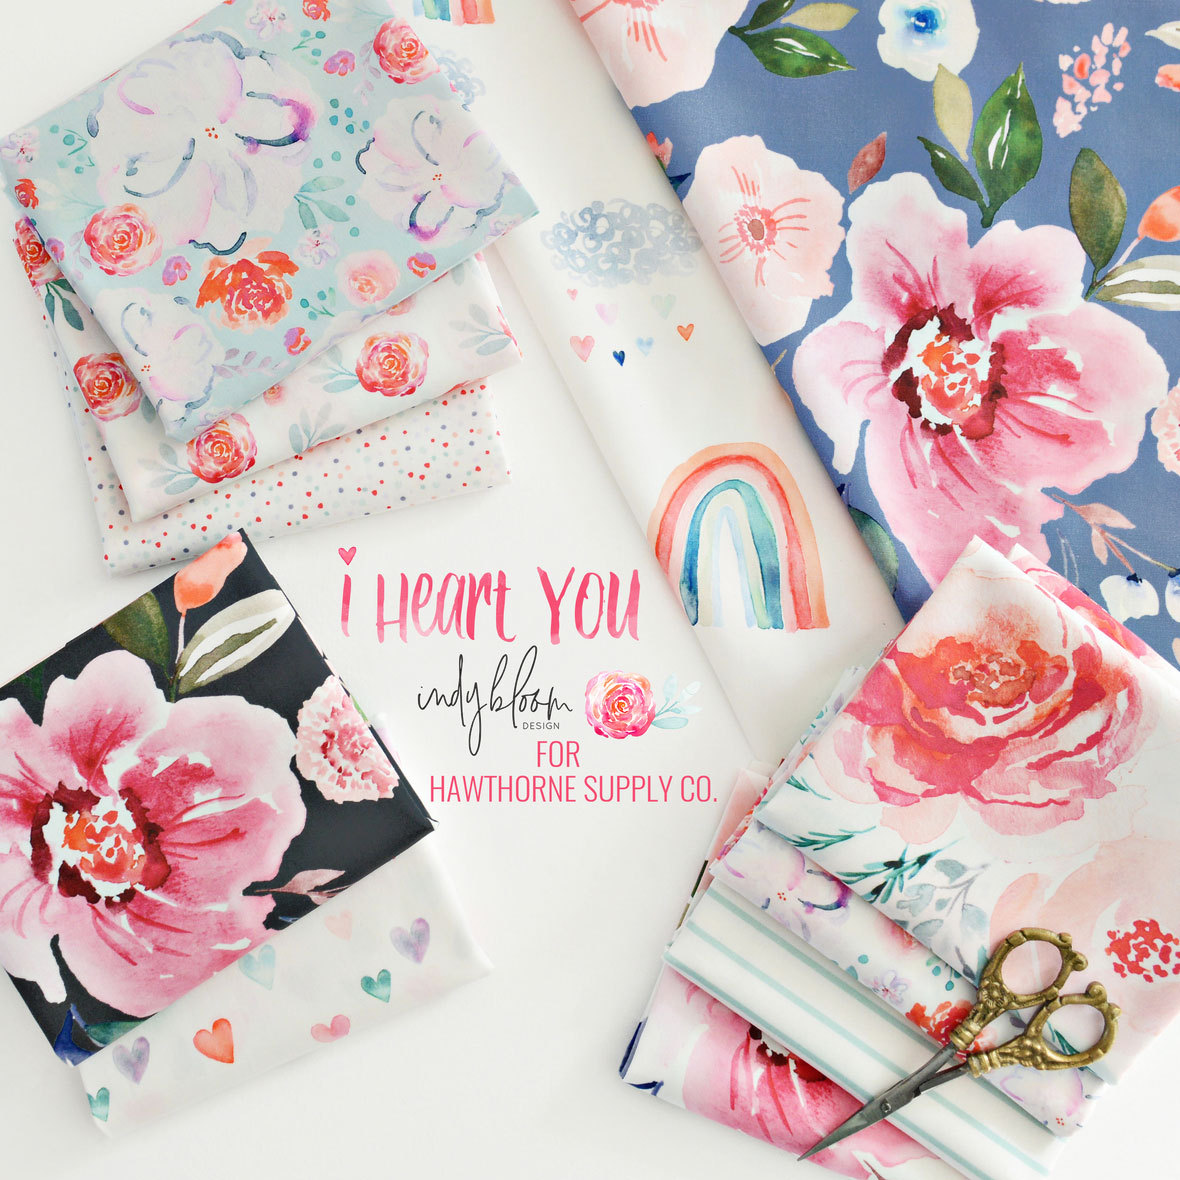 New-Indy bloom I Heart You Fabric Poster 2